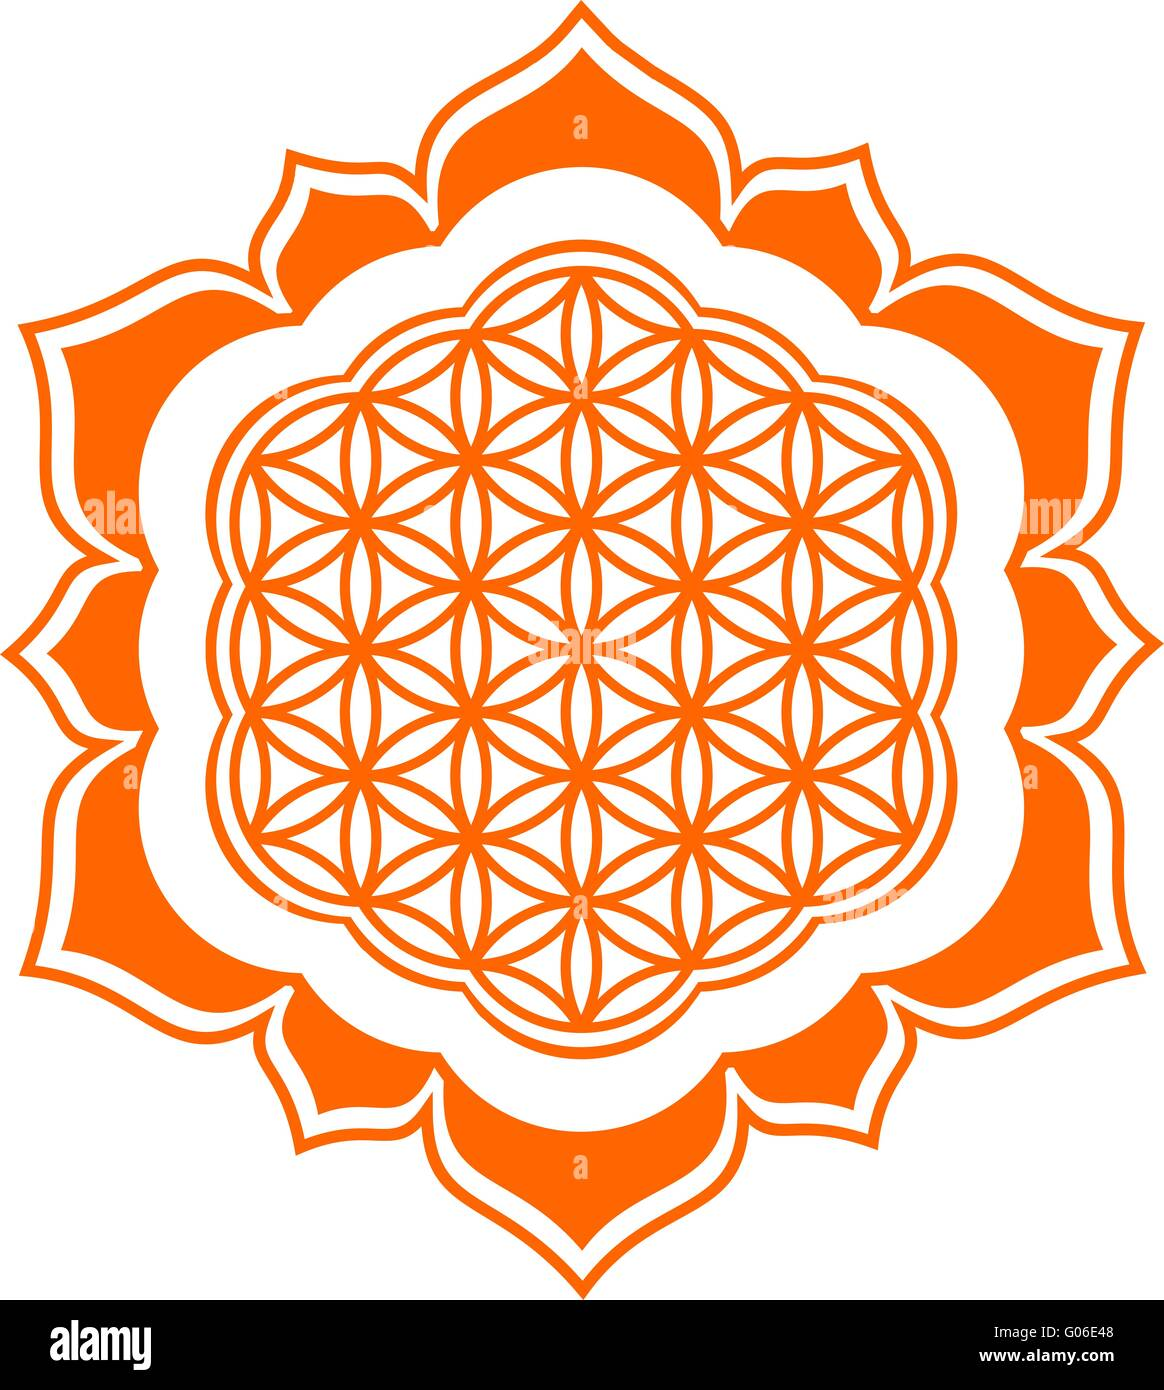 Flower of life - Lotus flower - Stock Image